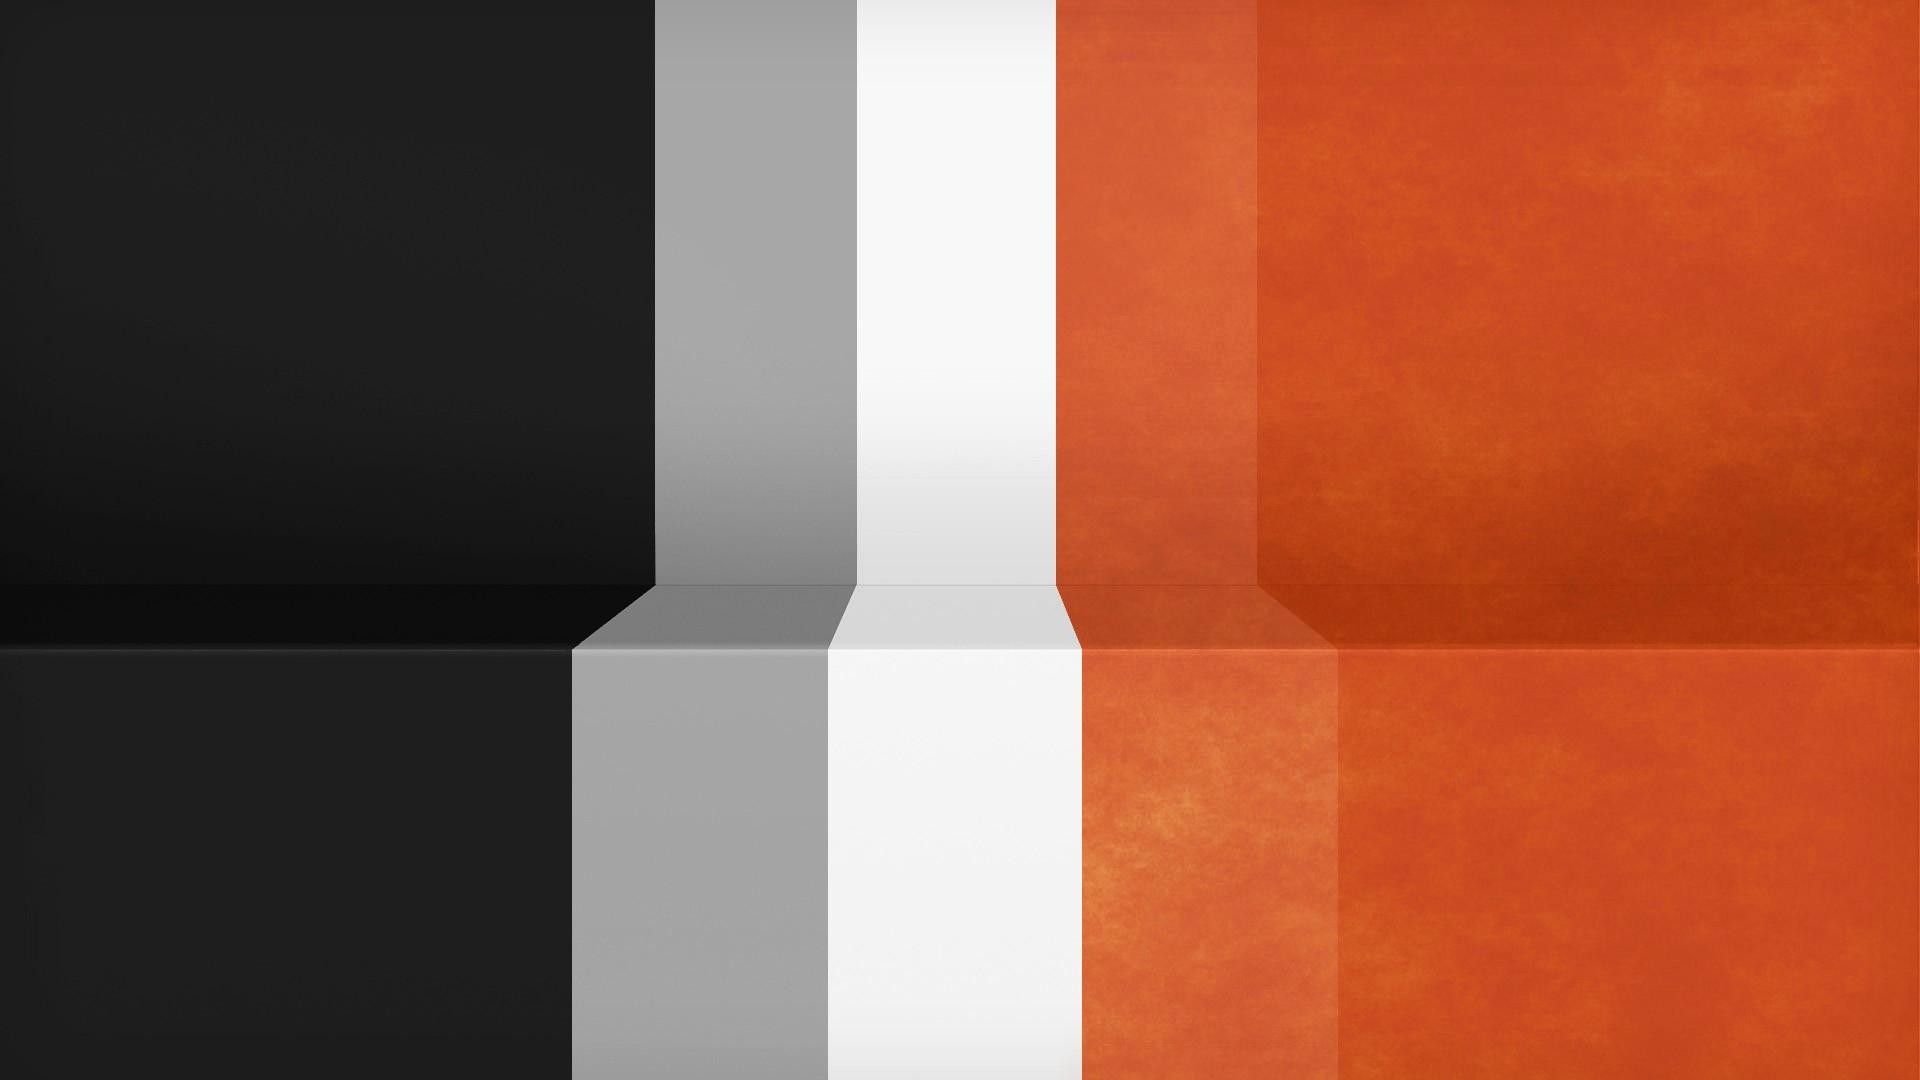 1920x1080 Abstract-black-minimalistic-white-orange-gray -textures-lines-racing-Lack-simple-stripes-Shading-wall-wallpaper-wpt7001680